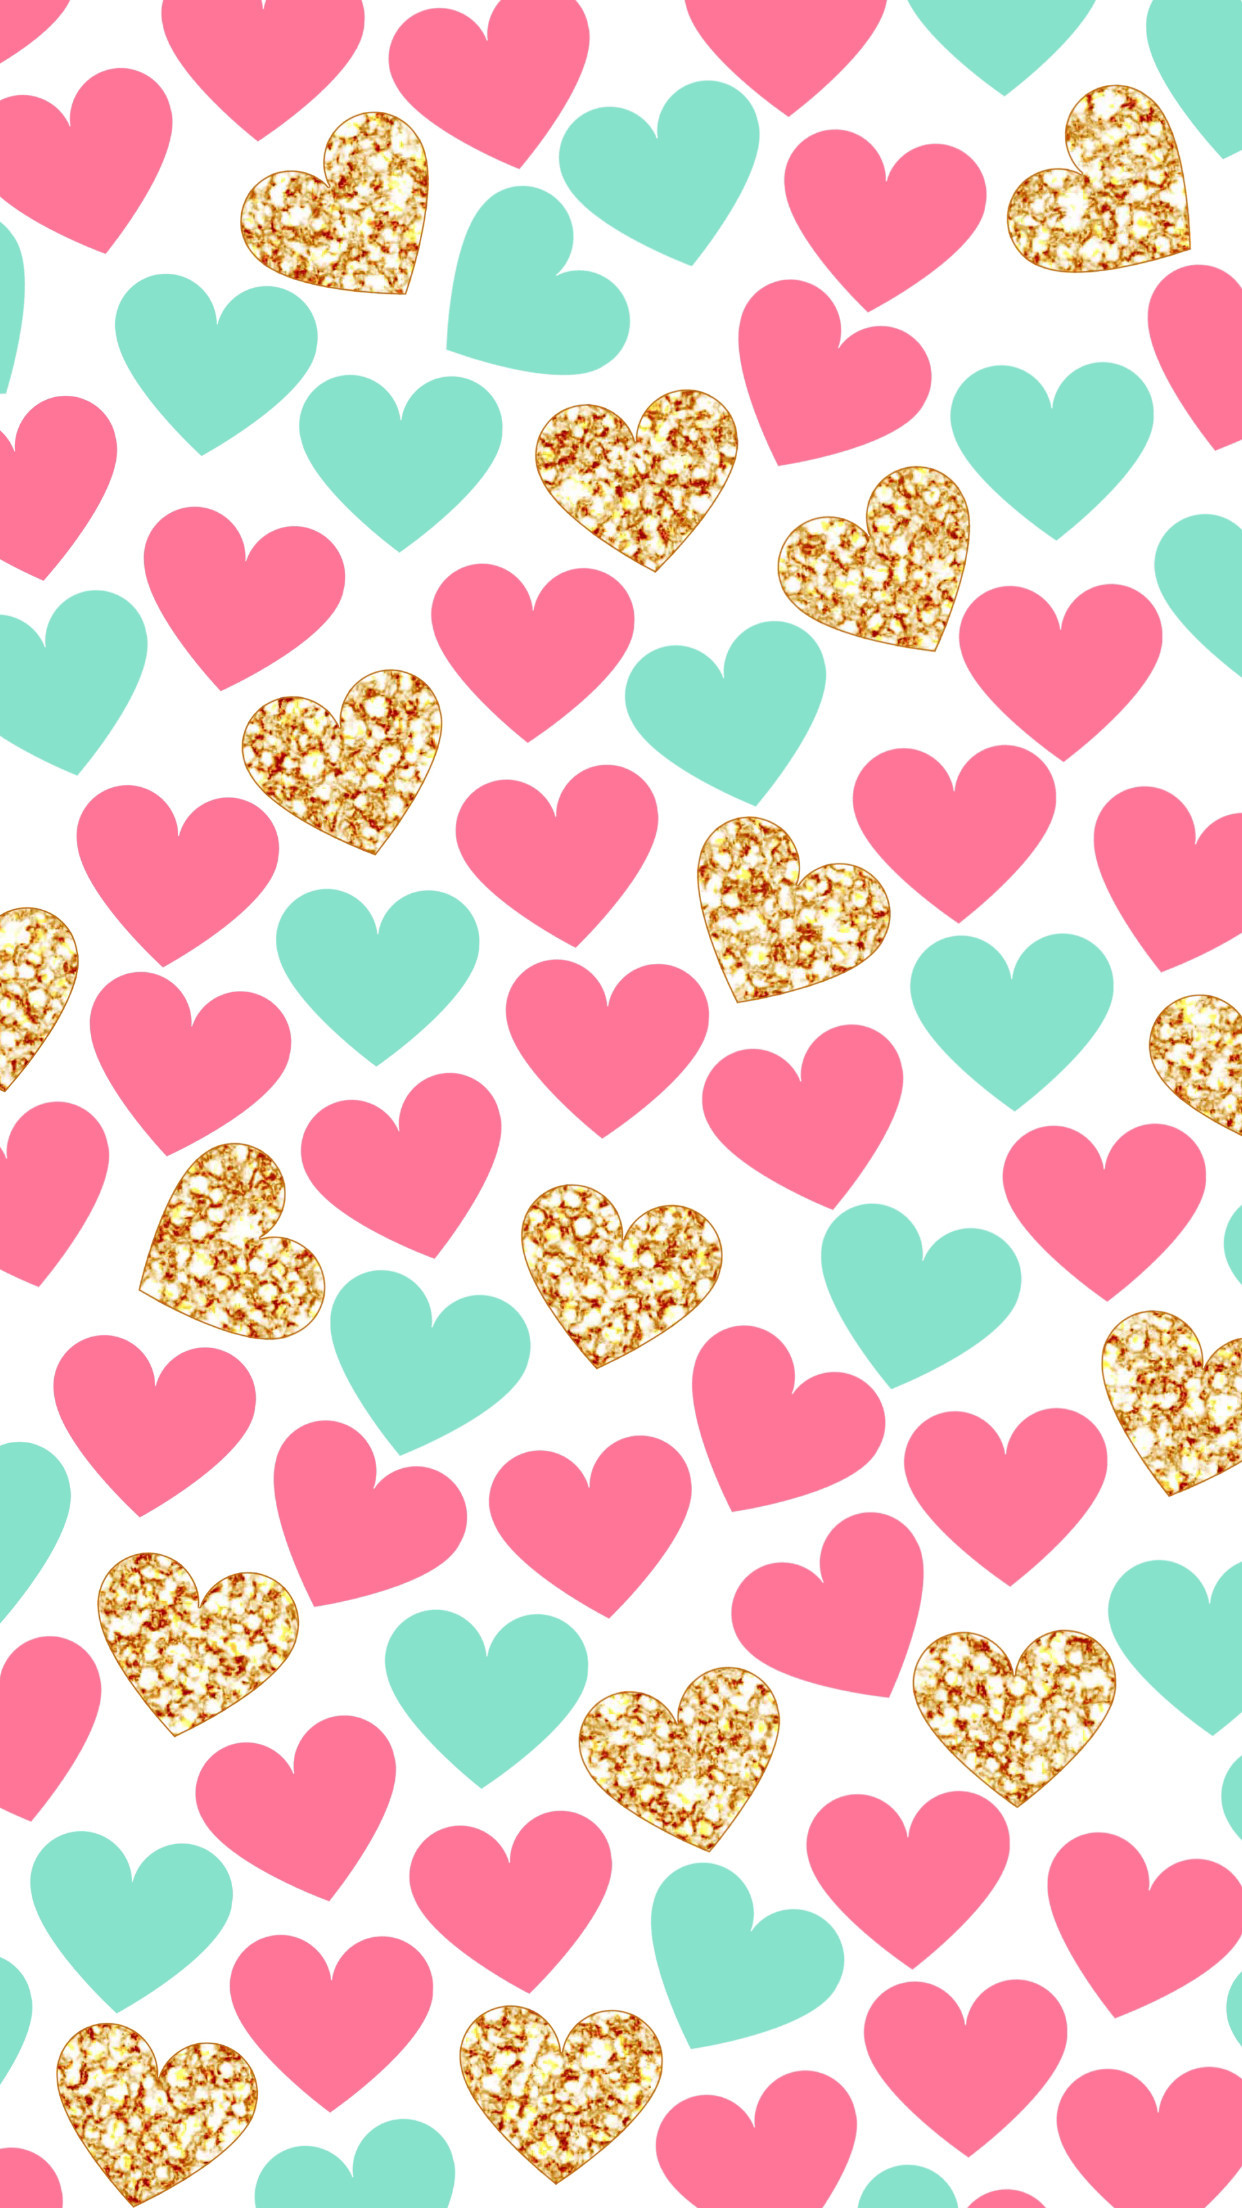 Pretty Heart Backgrounds 62 Images